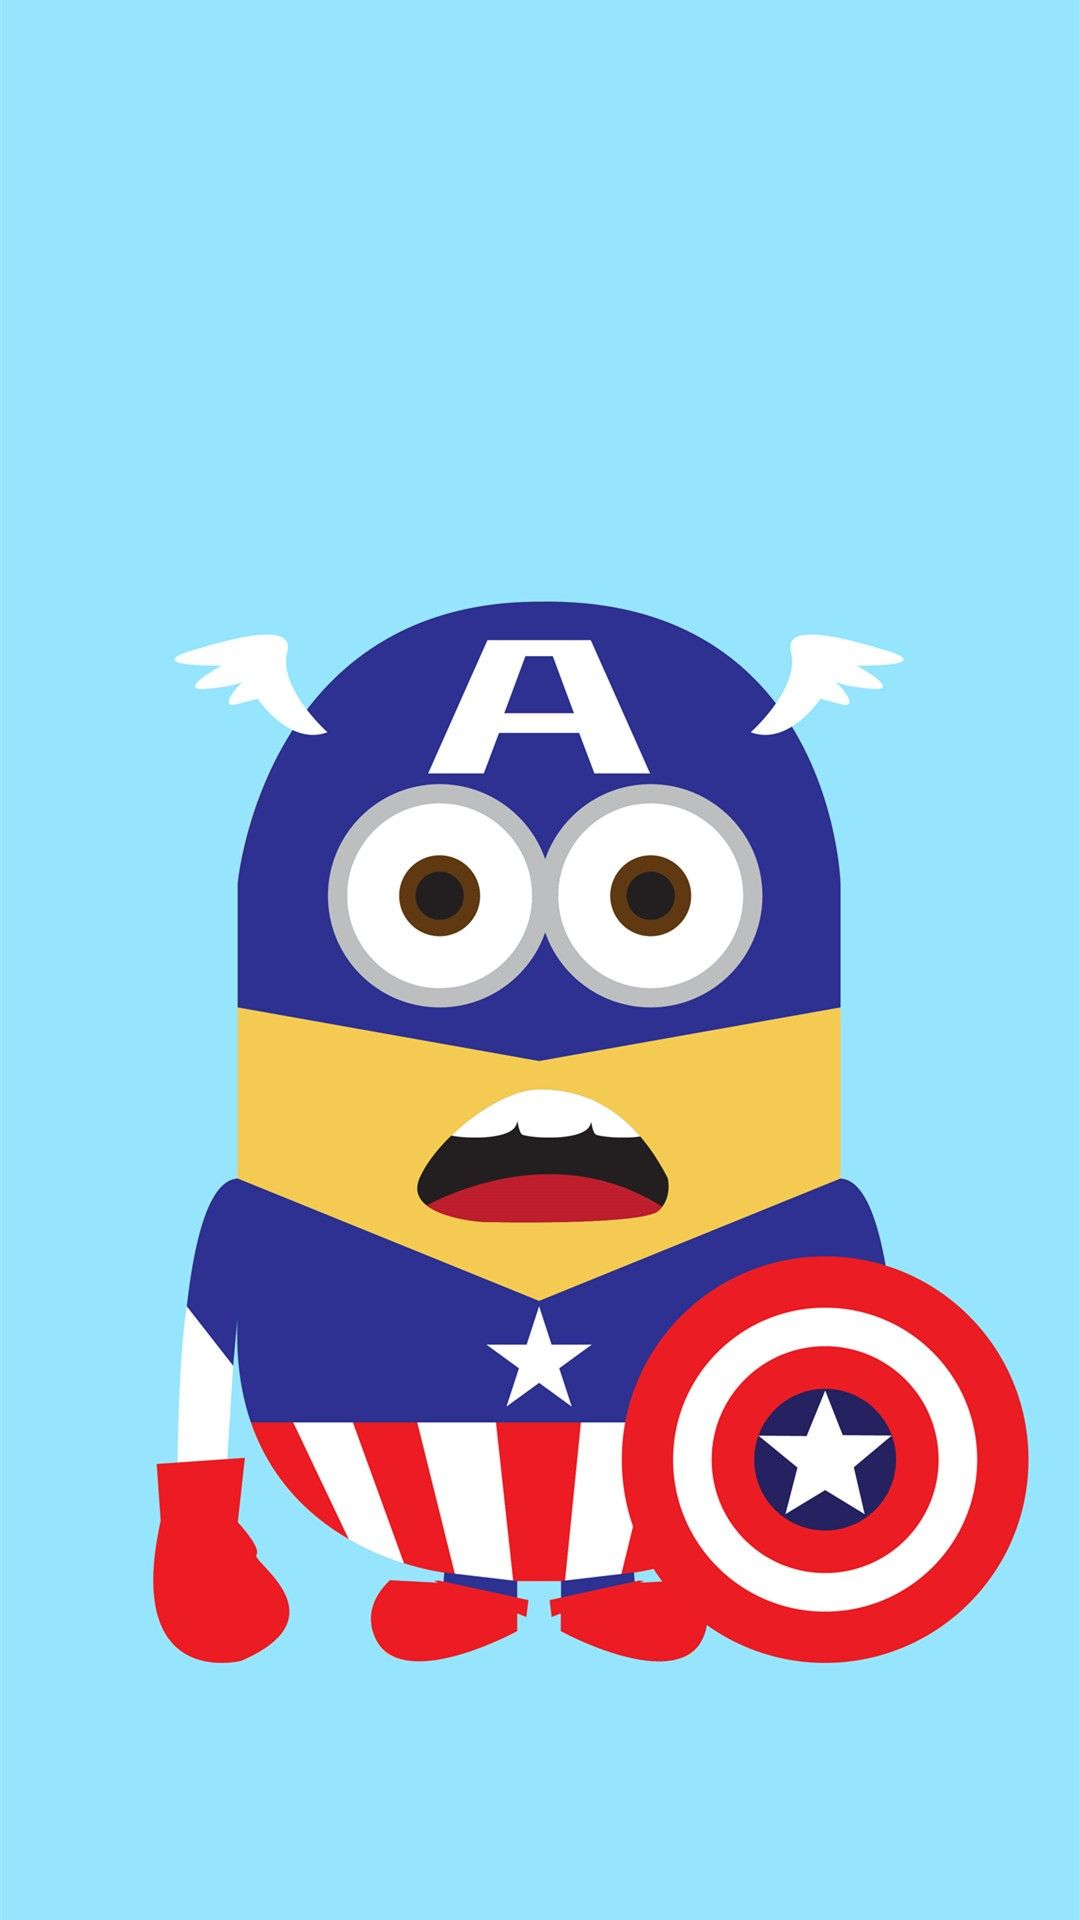 Tumblr iphone wallpaper minions - Despicable Me Inspired Captain America Minion Iphone 6 Plus Wallpaper For 2014 Halloween